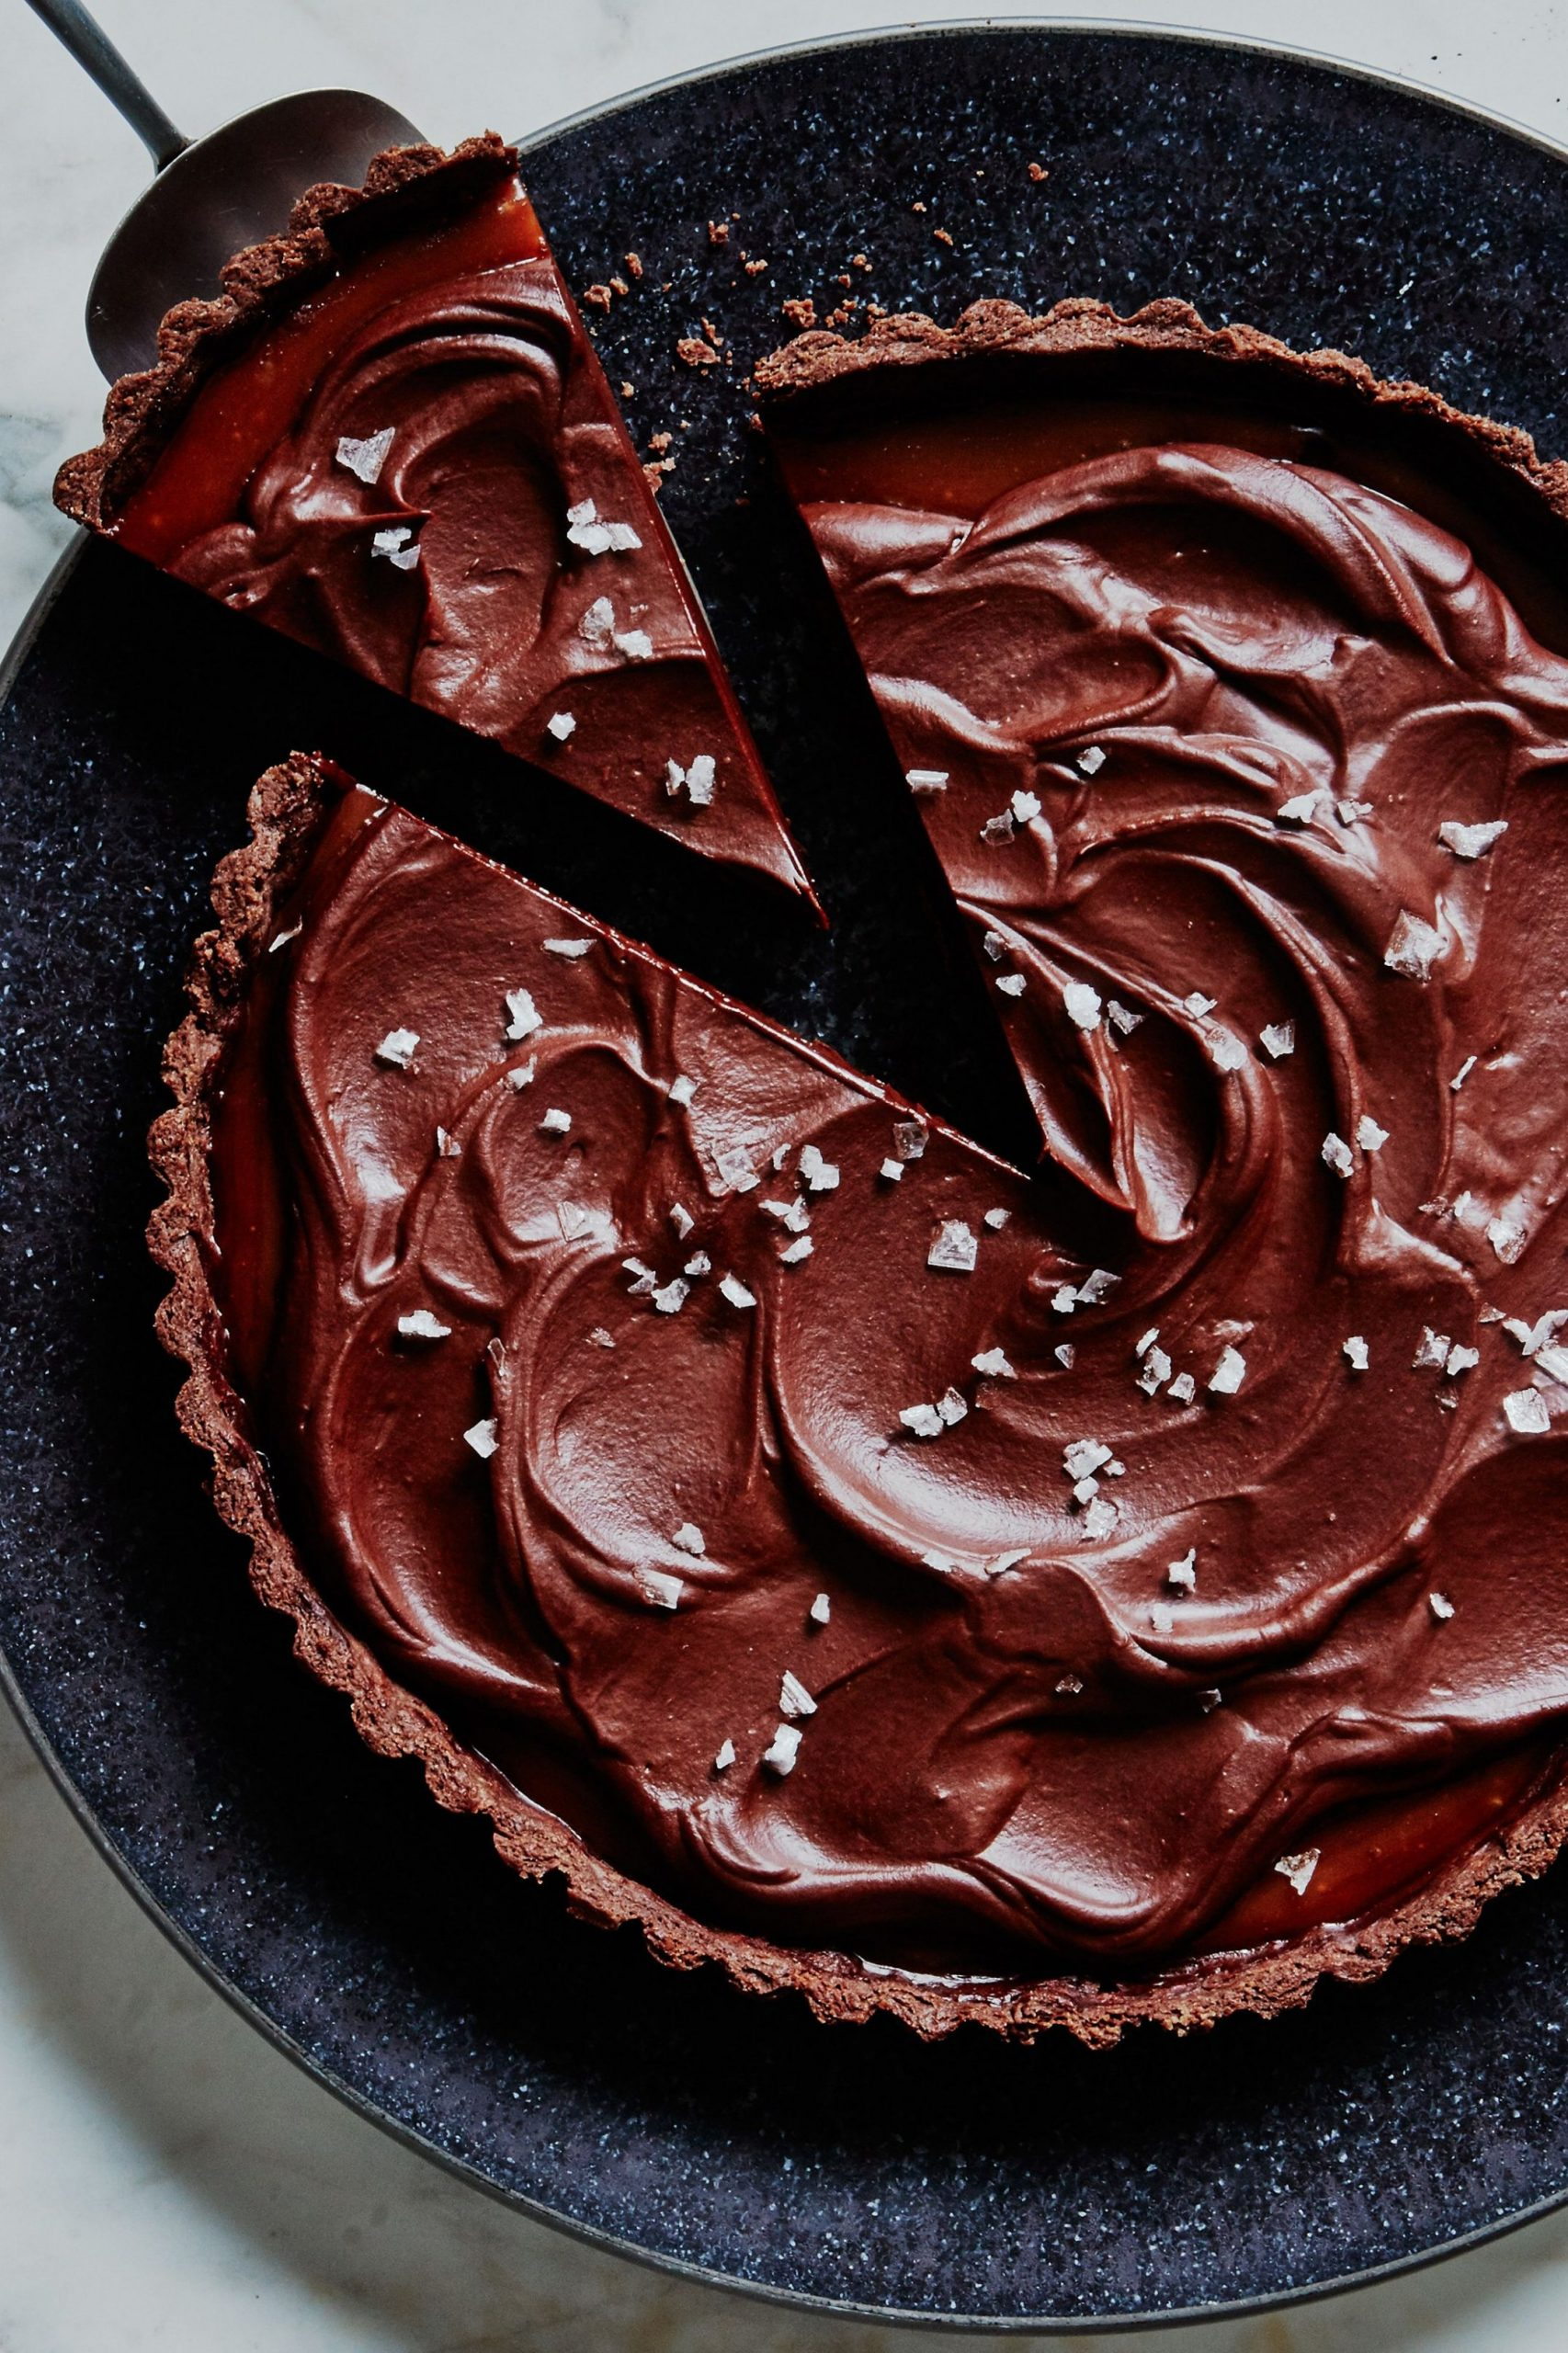 8 Decadent Dark Chocolate Dessert Recipes | Epicurious